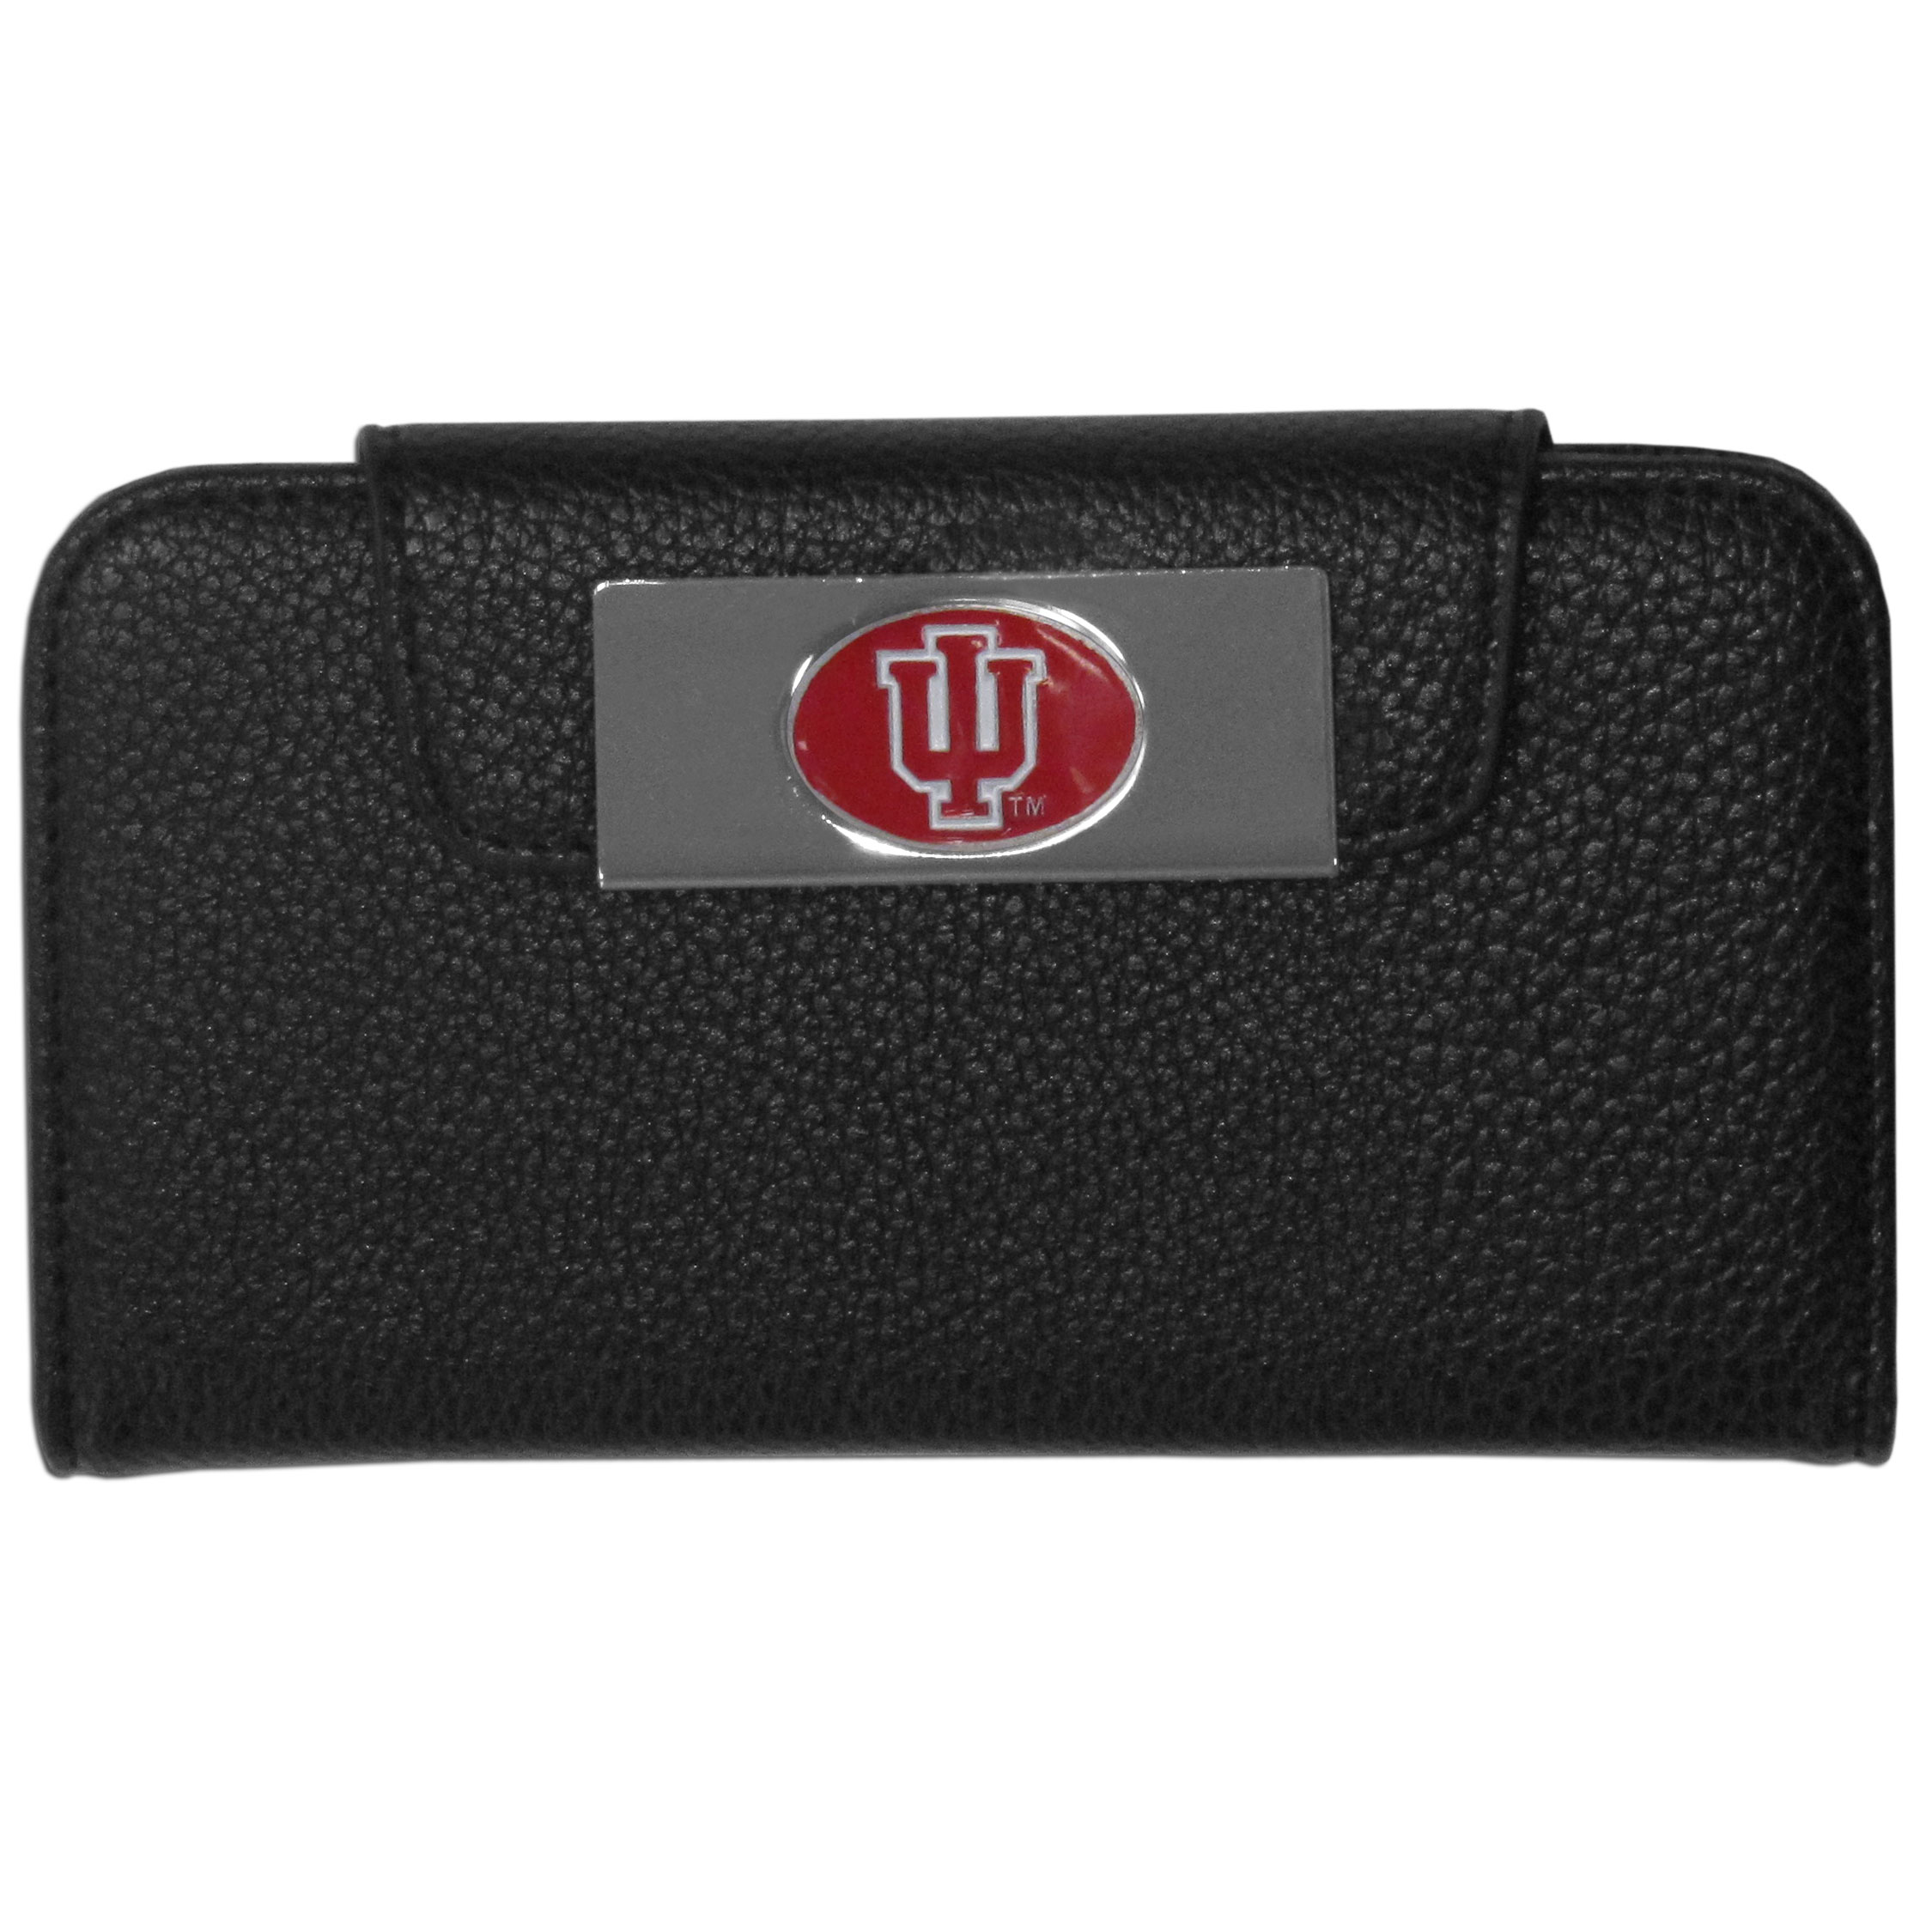 Indiana Hoosiers iPhone 5/5S Wallet Case